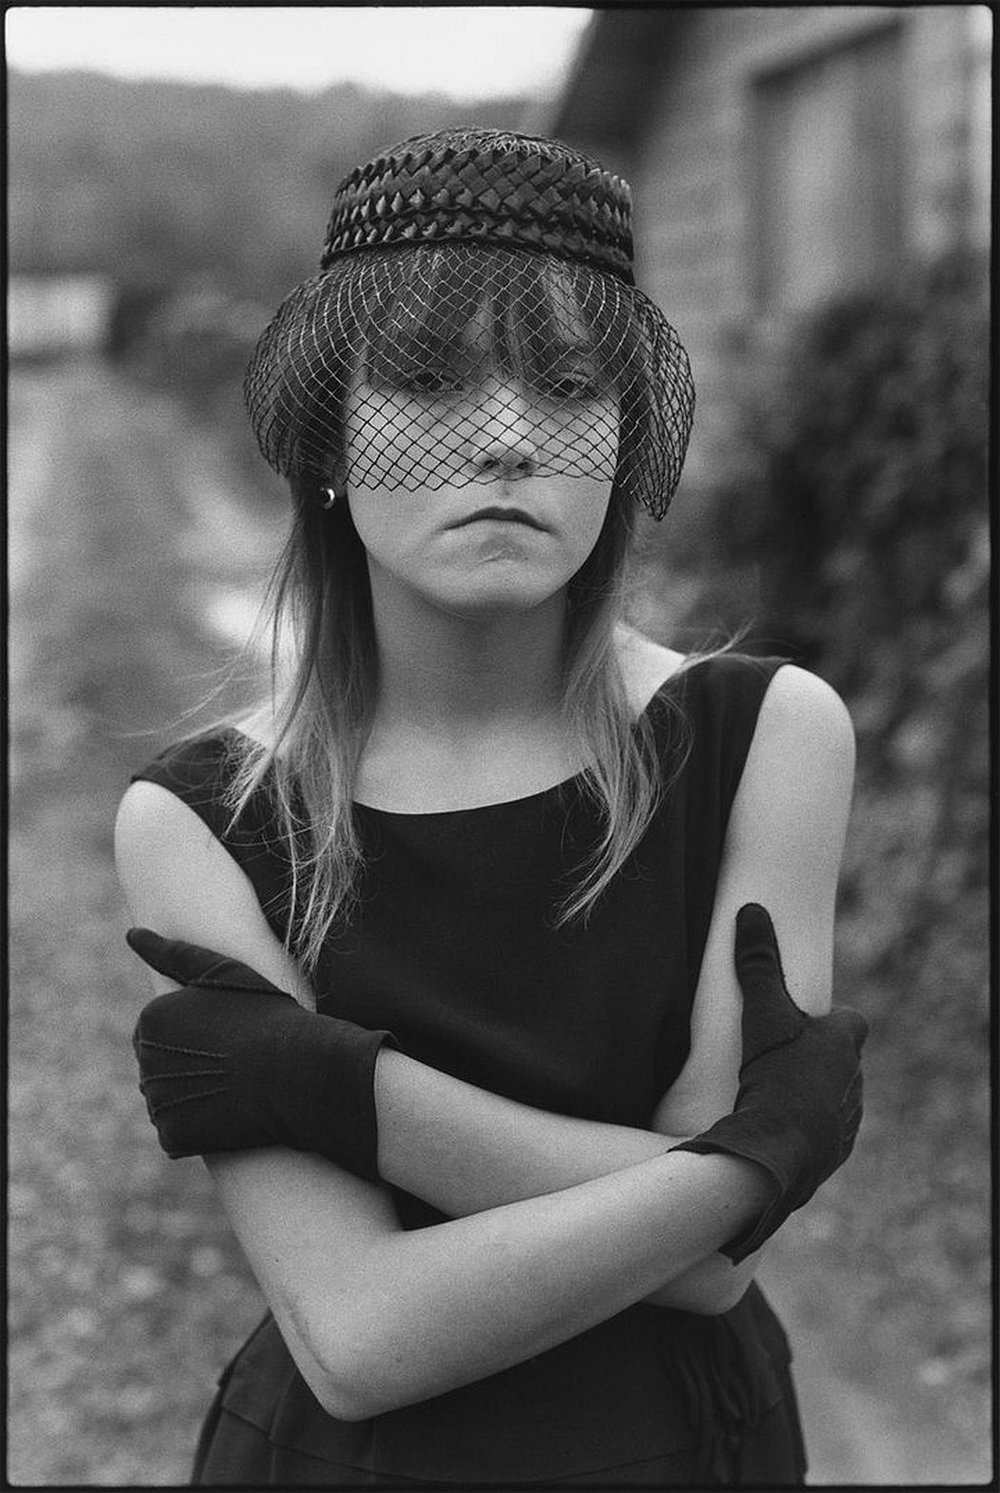 mary-ellen-mark-tiny-streetwise-revisited-02.jpg